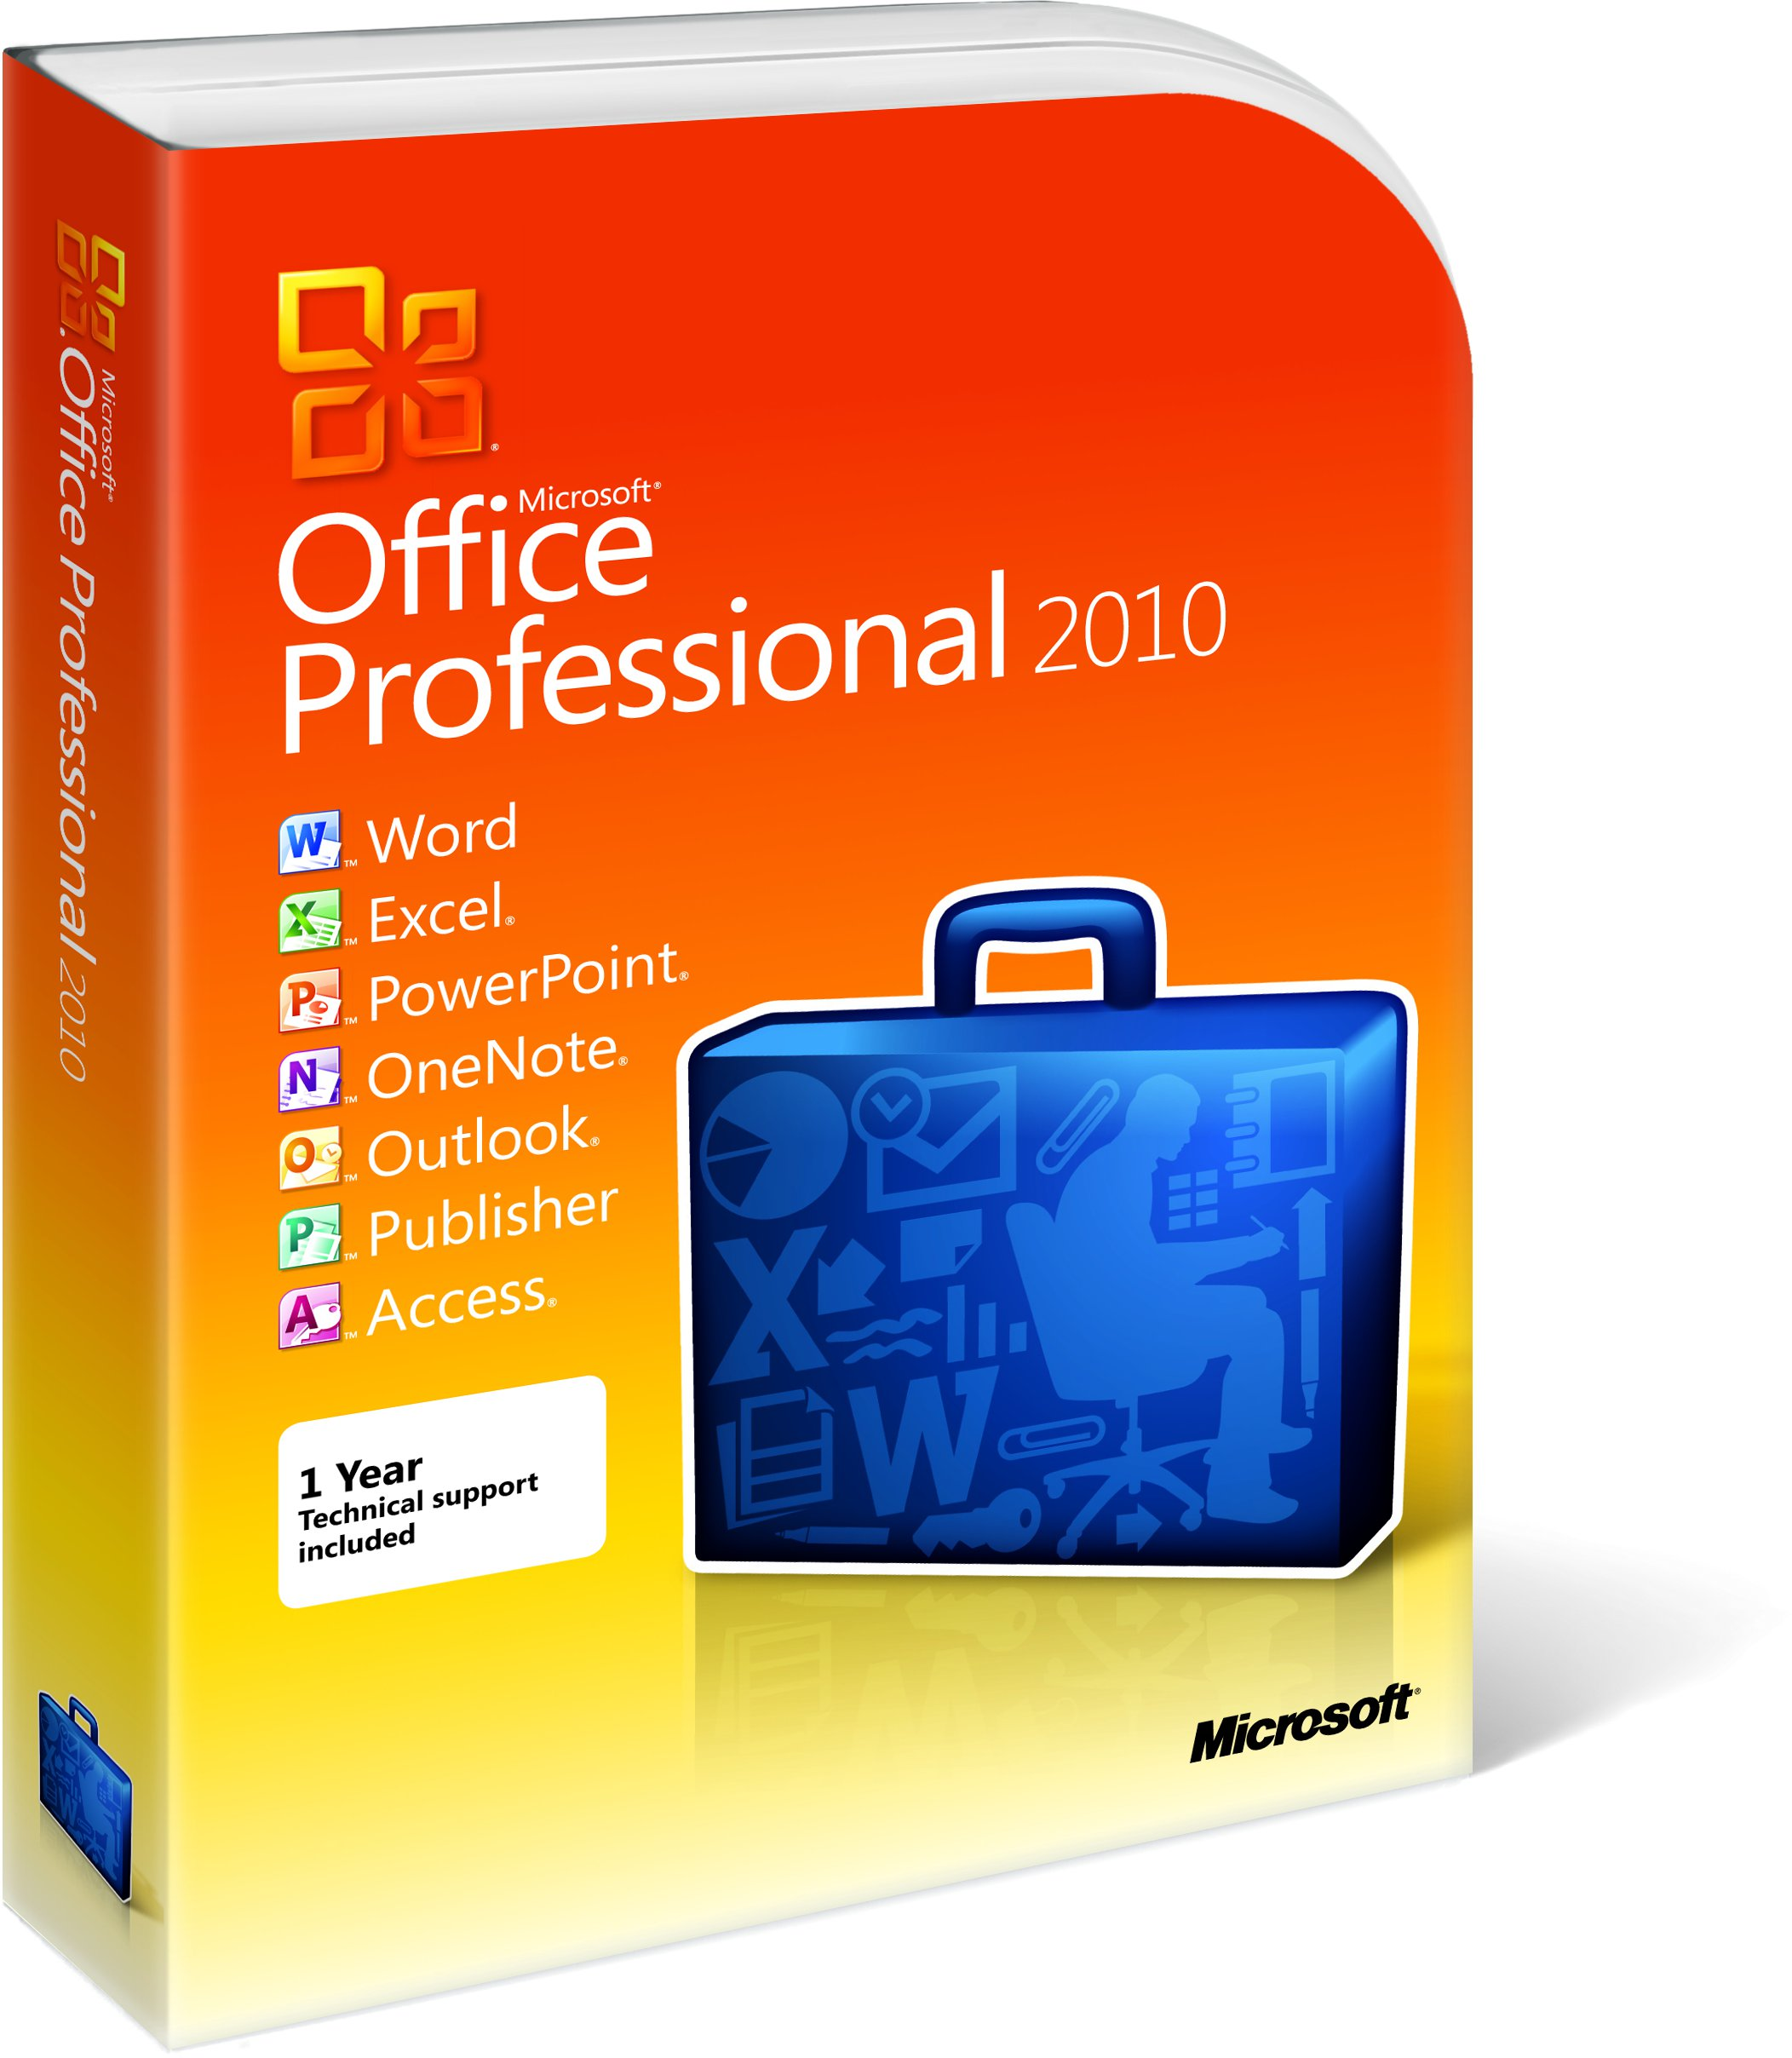 MS-Office-2010-Product-Key-Generator-daily2k